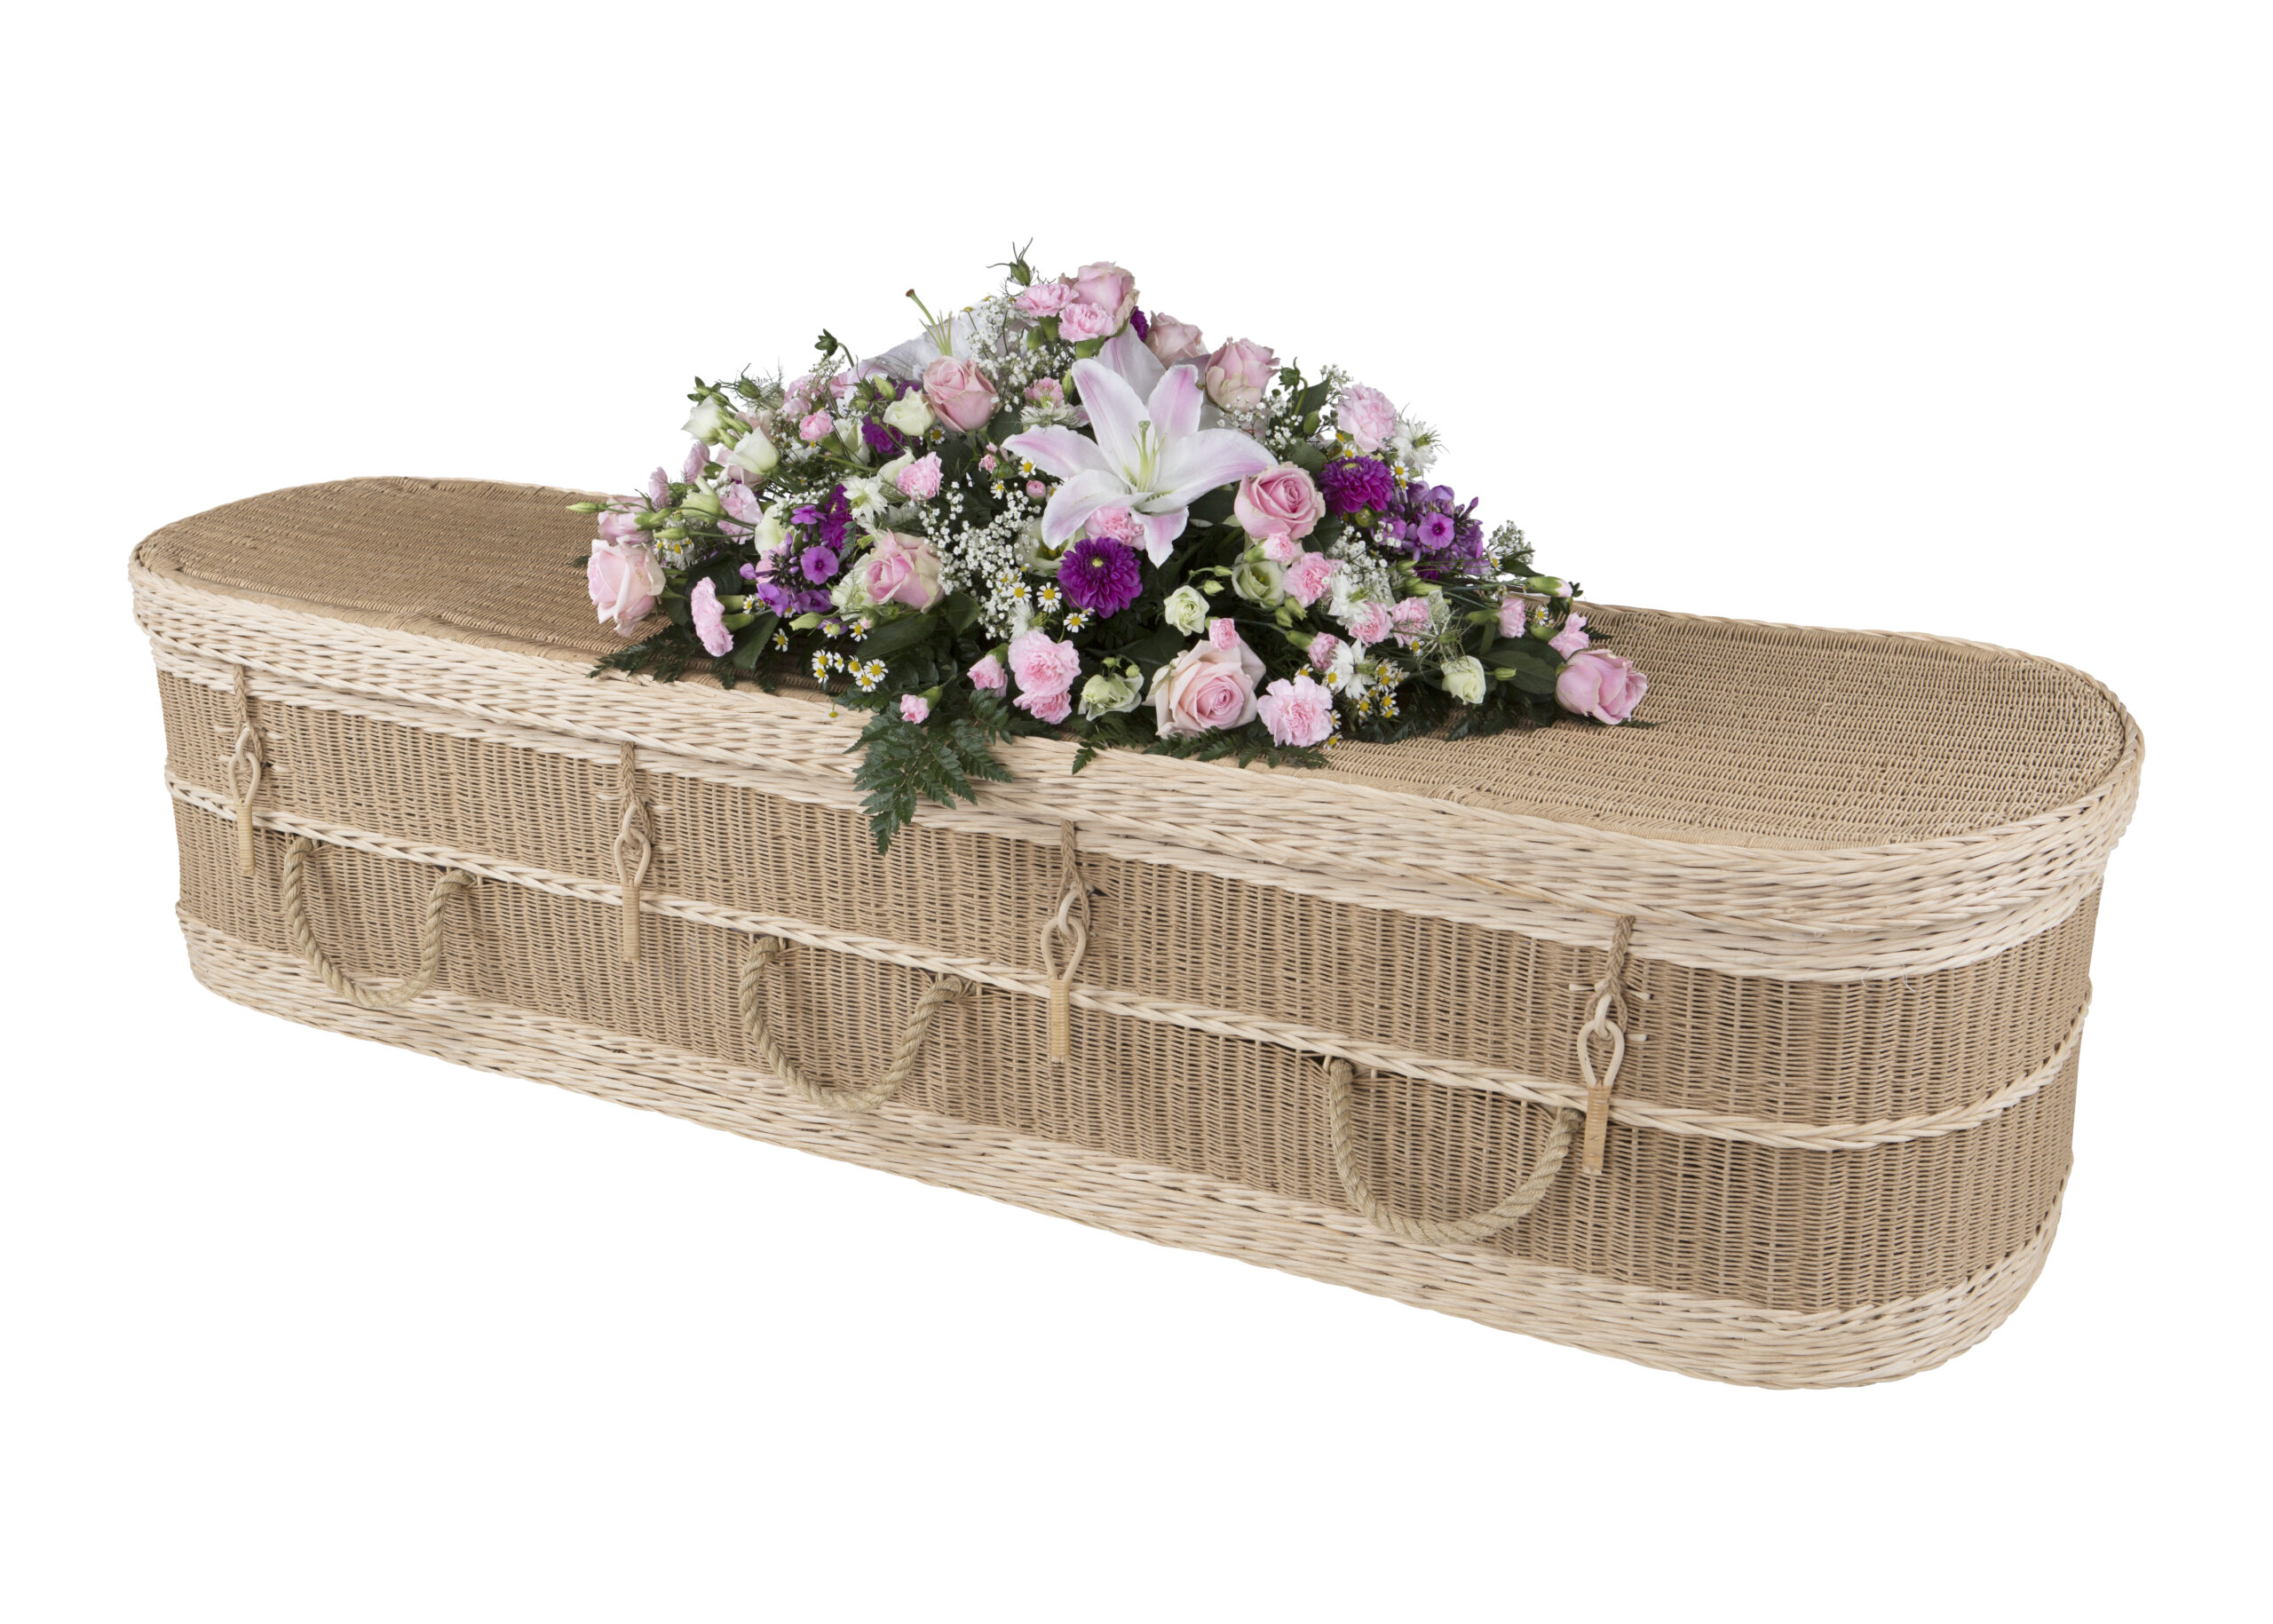 The Loom coffin